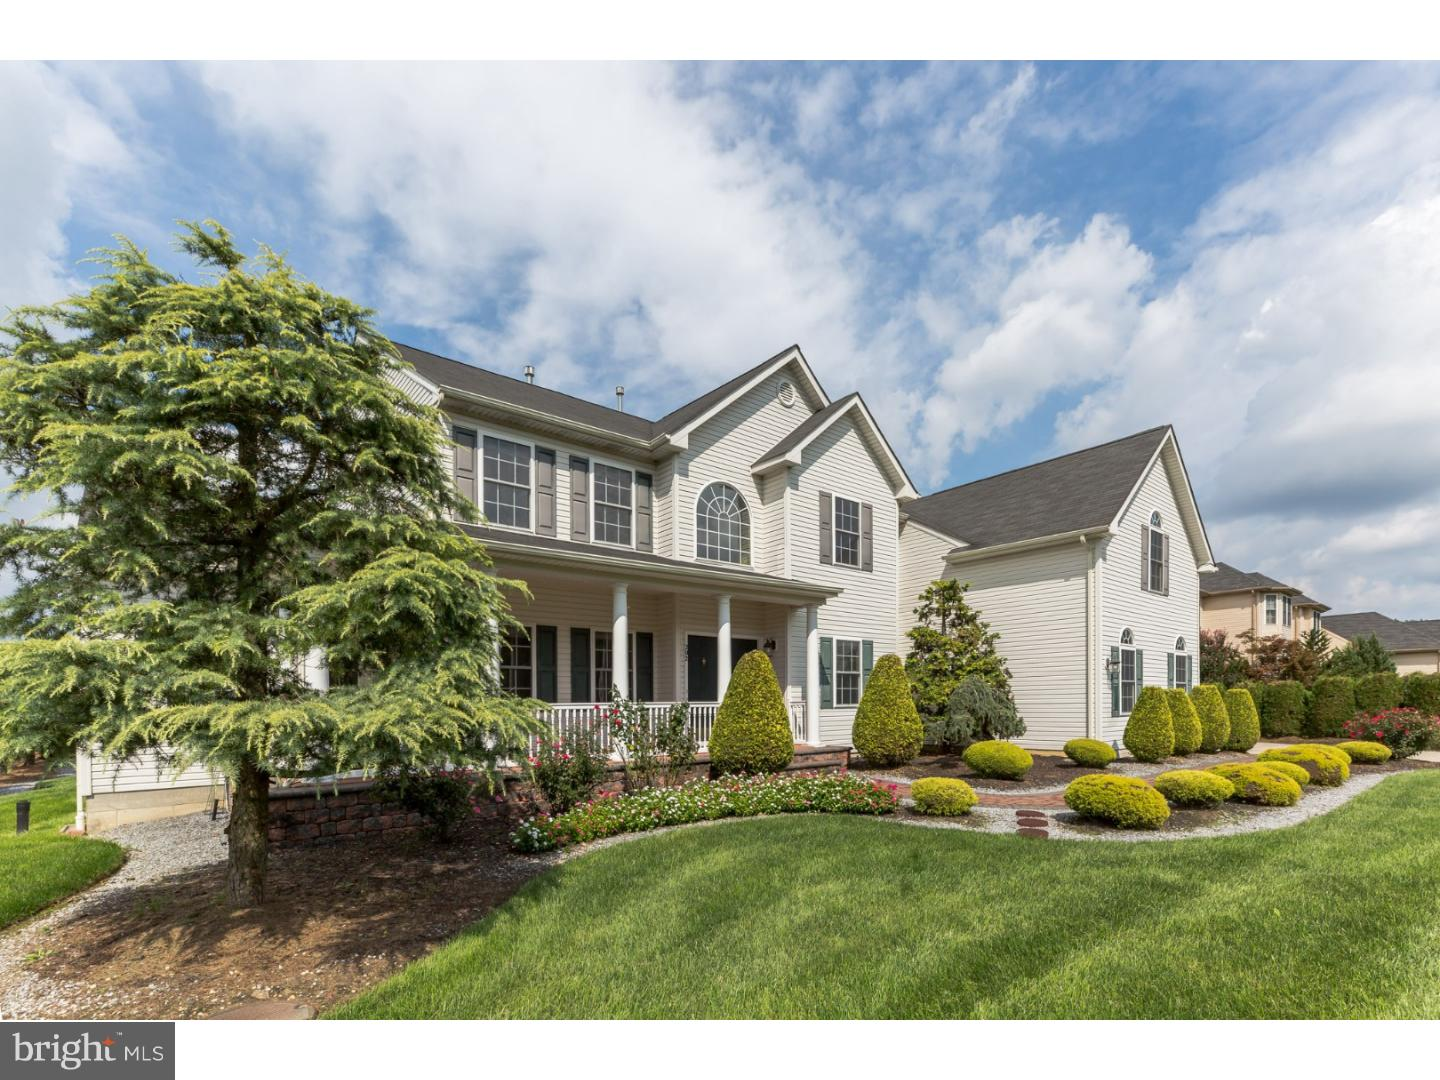 Single Family Home for Sale at 202 BARBARA Lane Franklinville, New Jersey 08322 United StatesMunicipality: Franklin Township